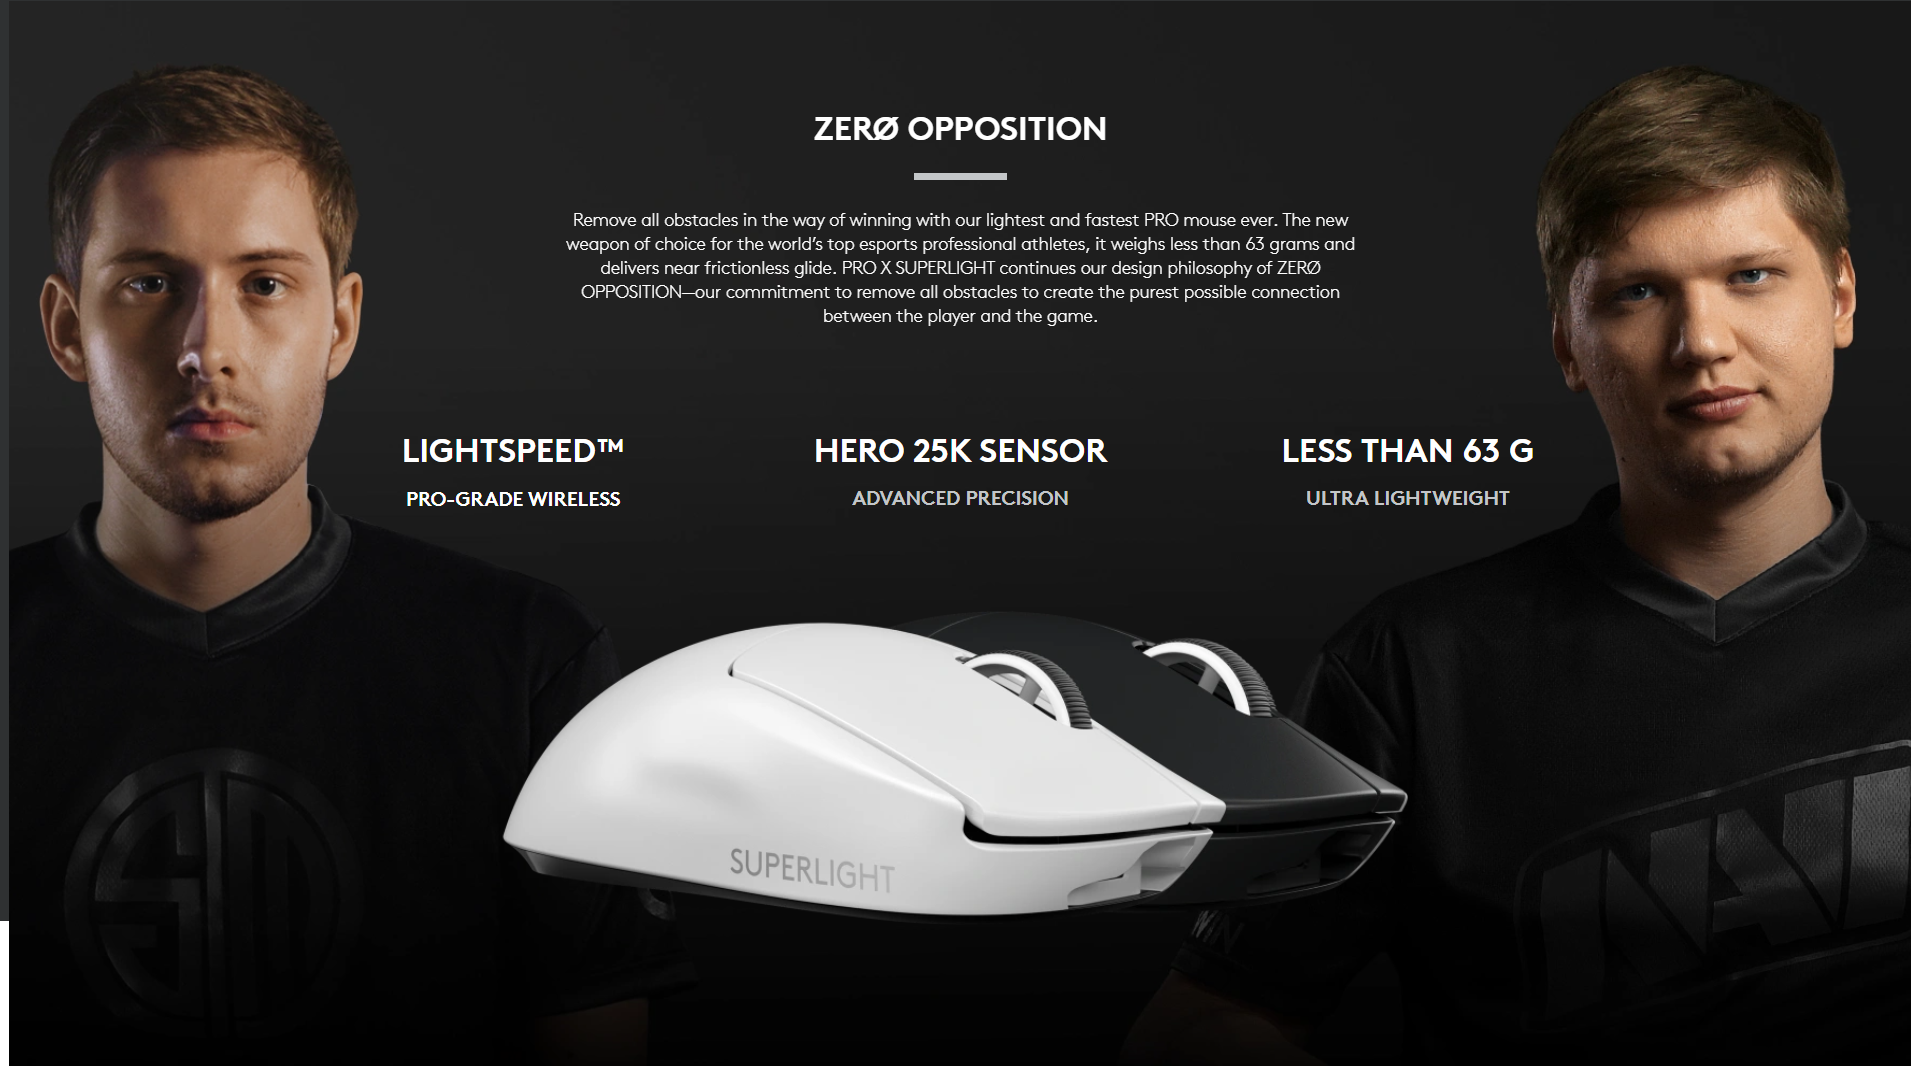 Remove all obstacles in the way of winning with our lightest and fastest PRO mouse ever. The new weapon of choice for the world's top esports professional athletes, it weighs less than 63 grams and delivers near frictionless glide. PRO X SUPERLIGHT continues our design philosophy of ZERØ OPPOSITION—our commitment to remove all obstacles to create the purest possible connection between the player and the game.